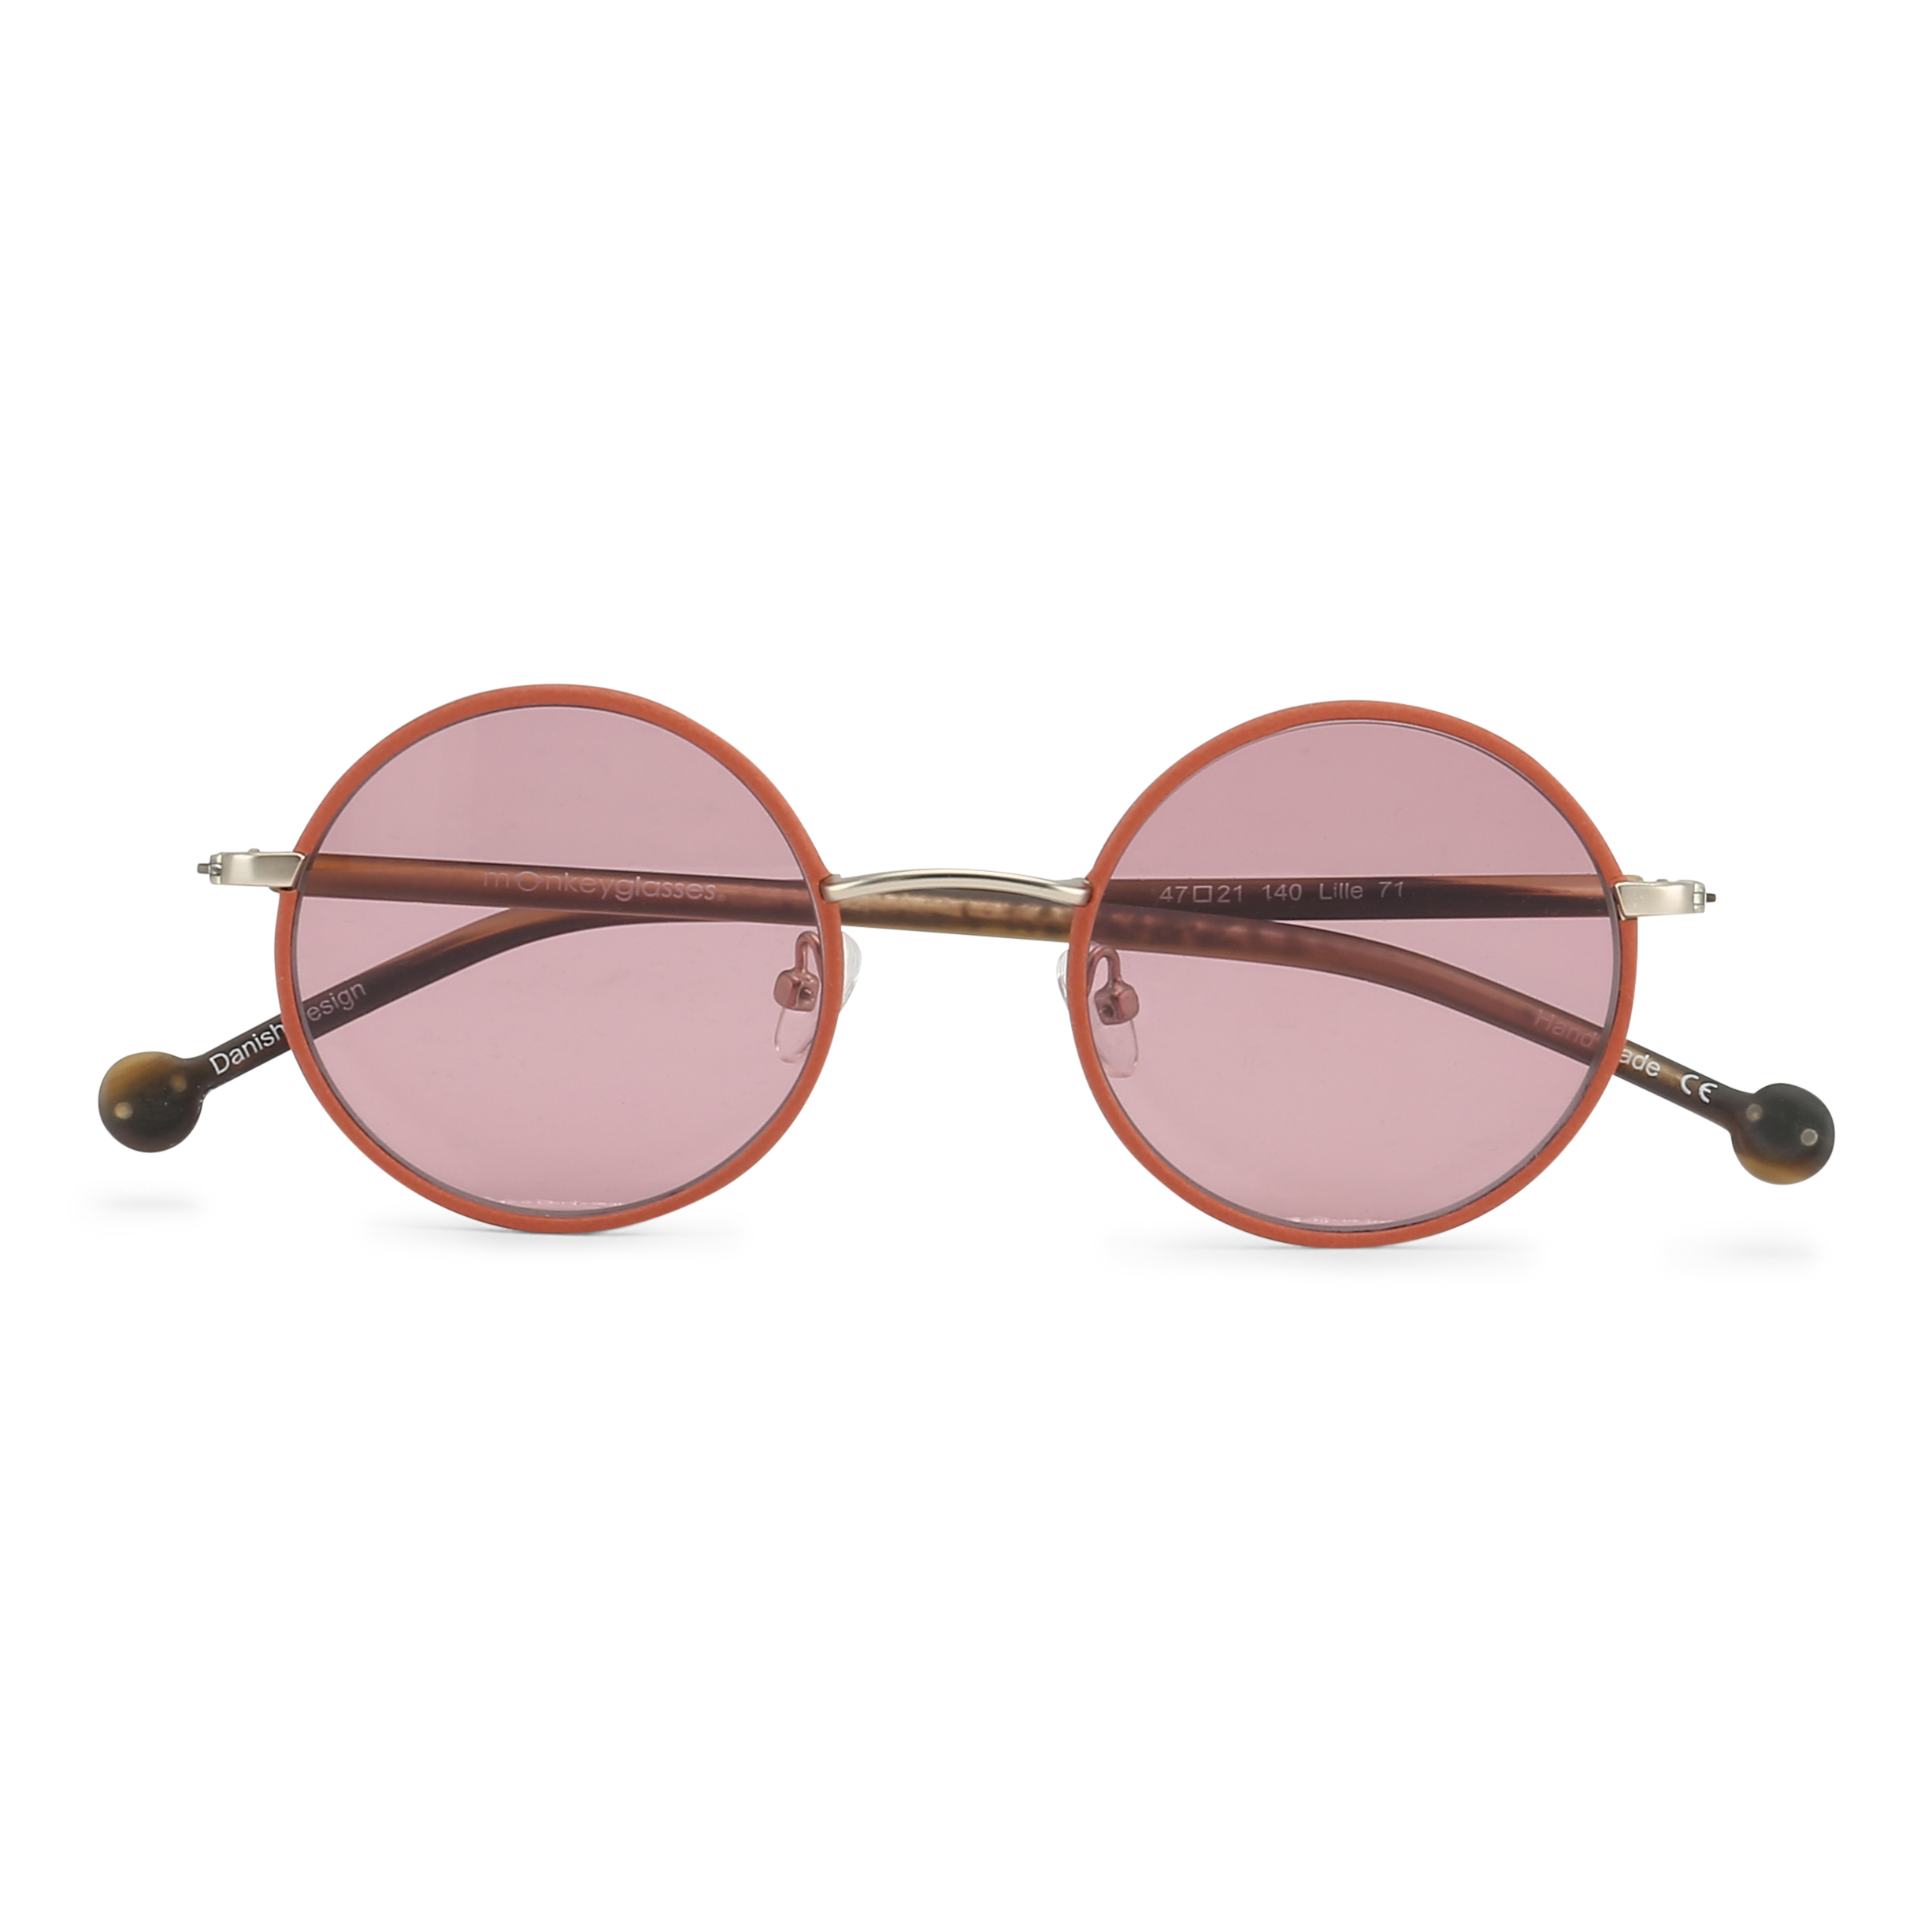 monkeyglasses® | frame: Lille71 in papayaSun